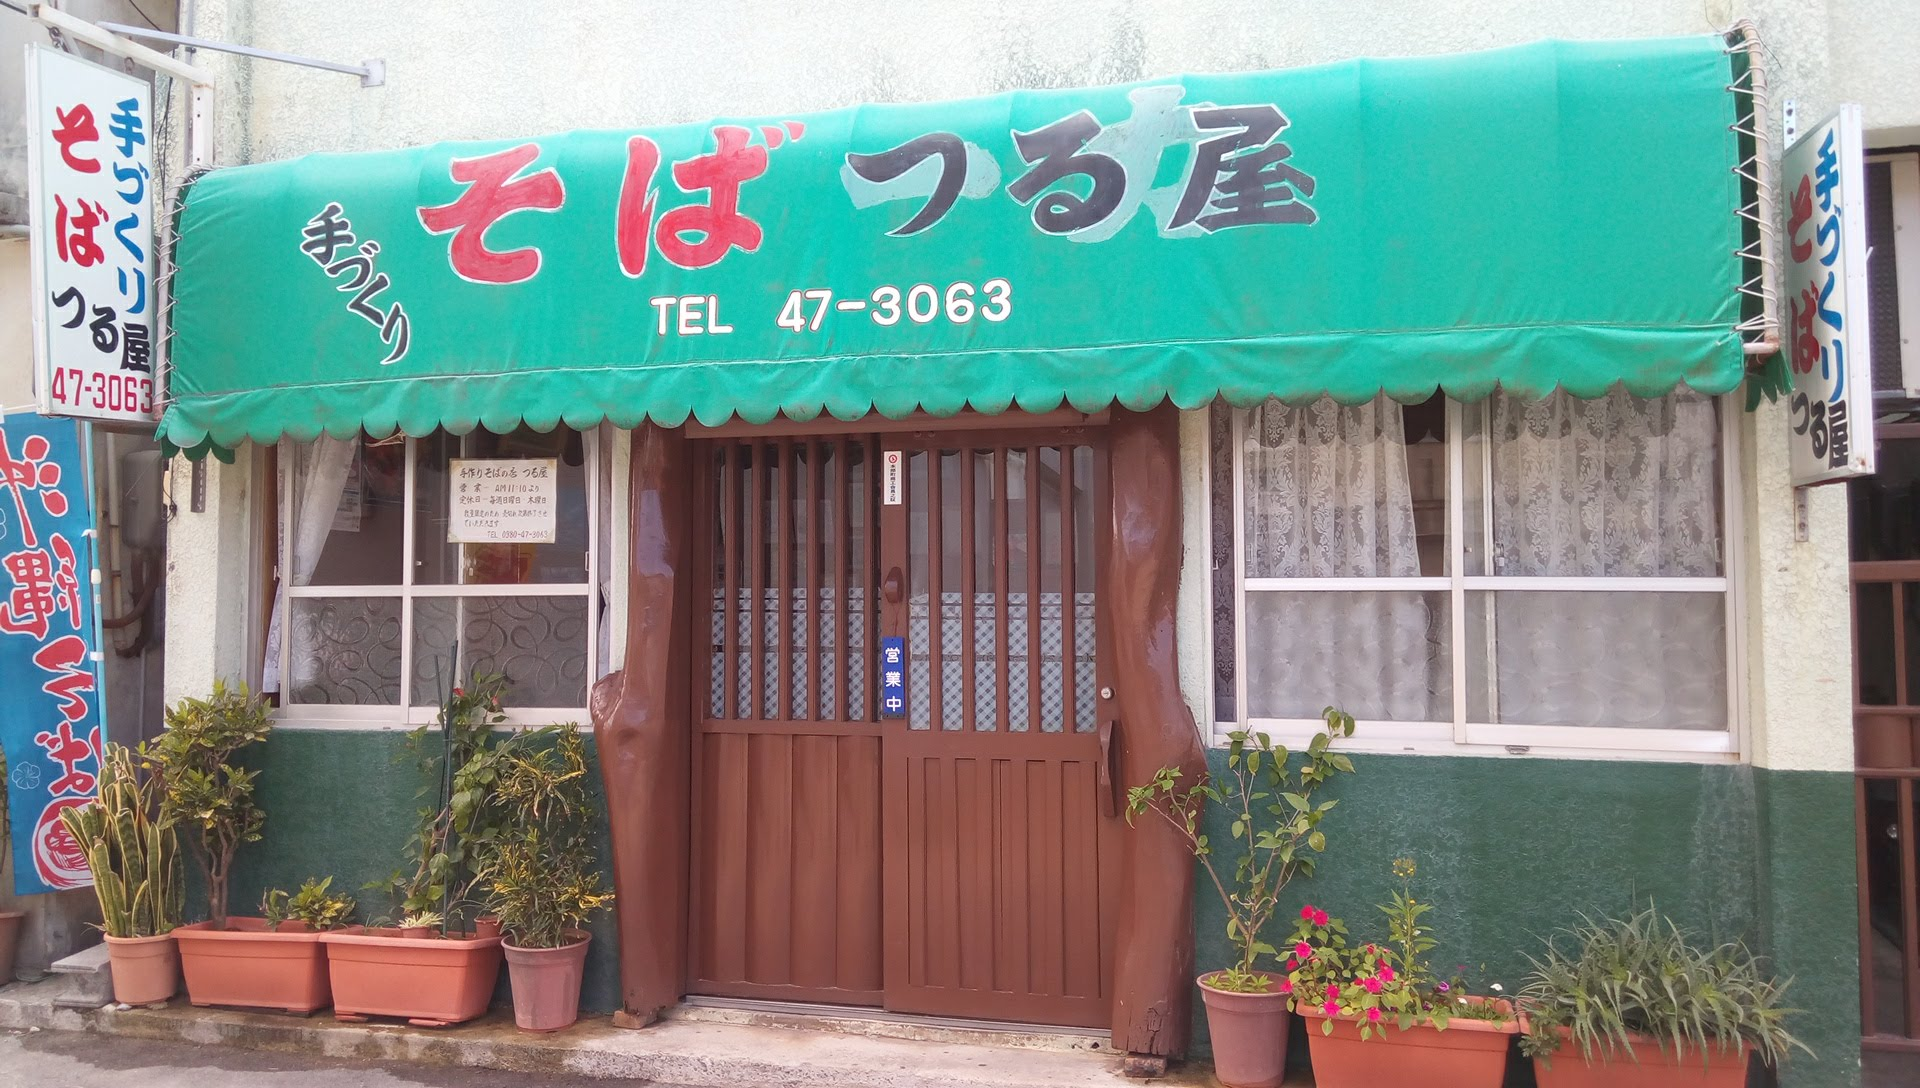 Tsuruya a long-established Okinawa soba shop that has been loved for more than half a century in Motobu town